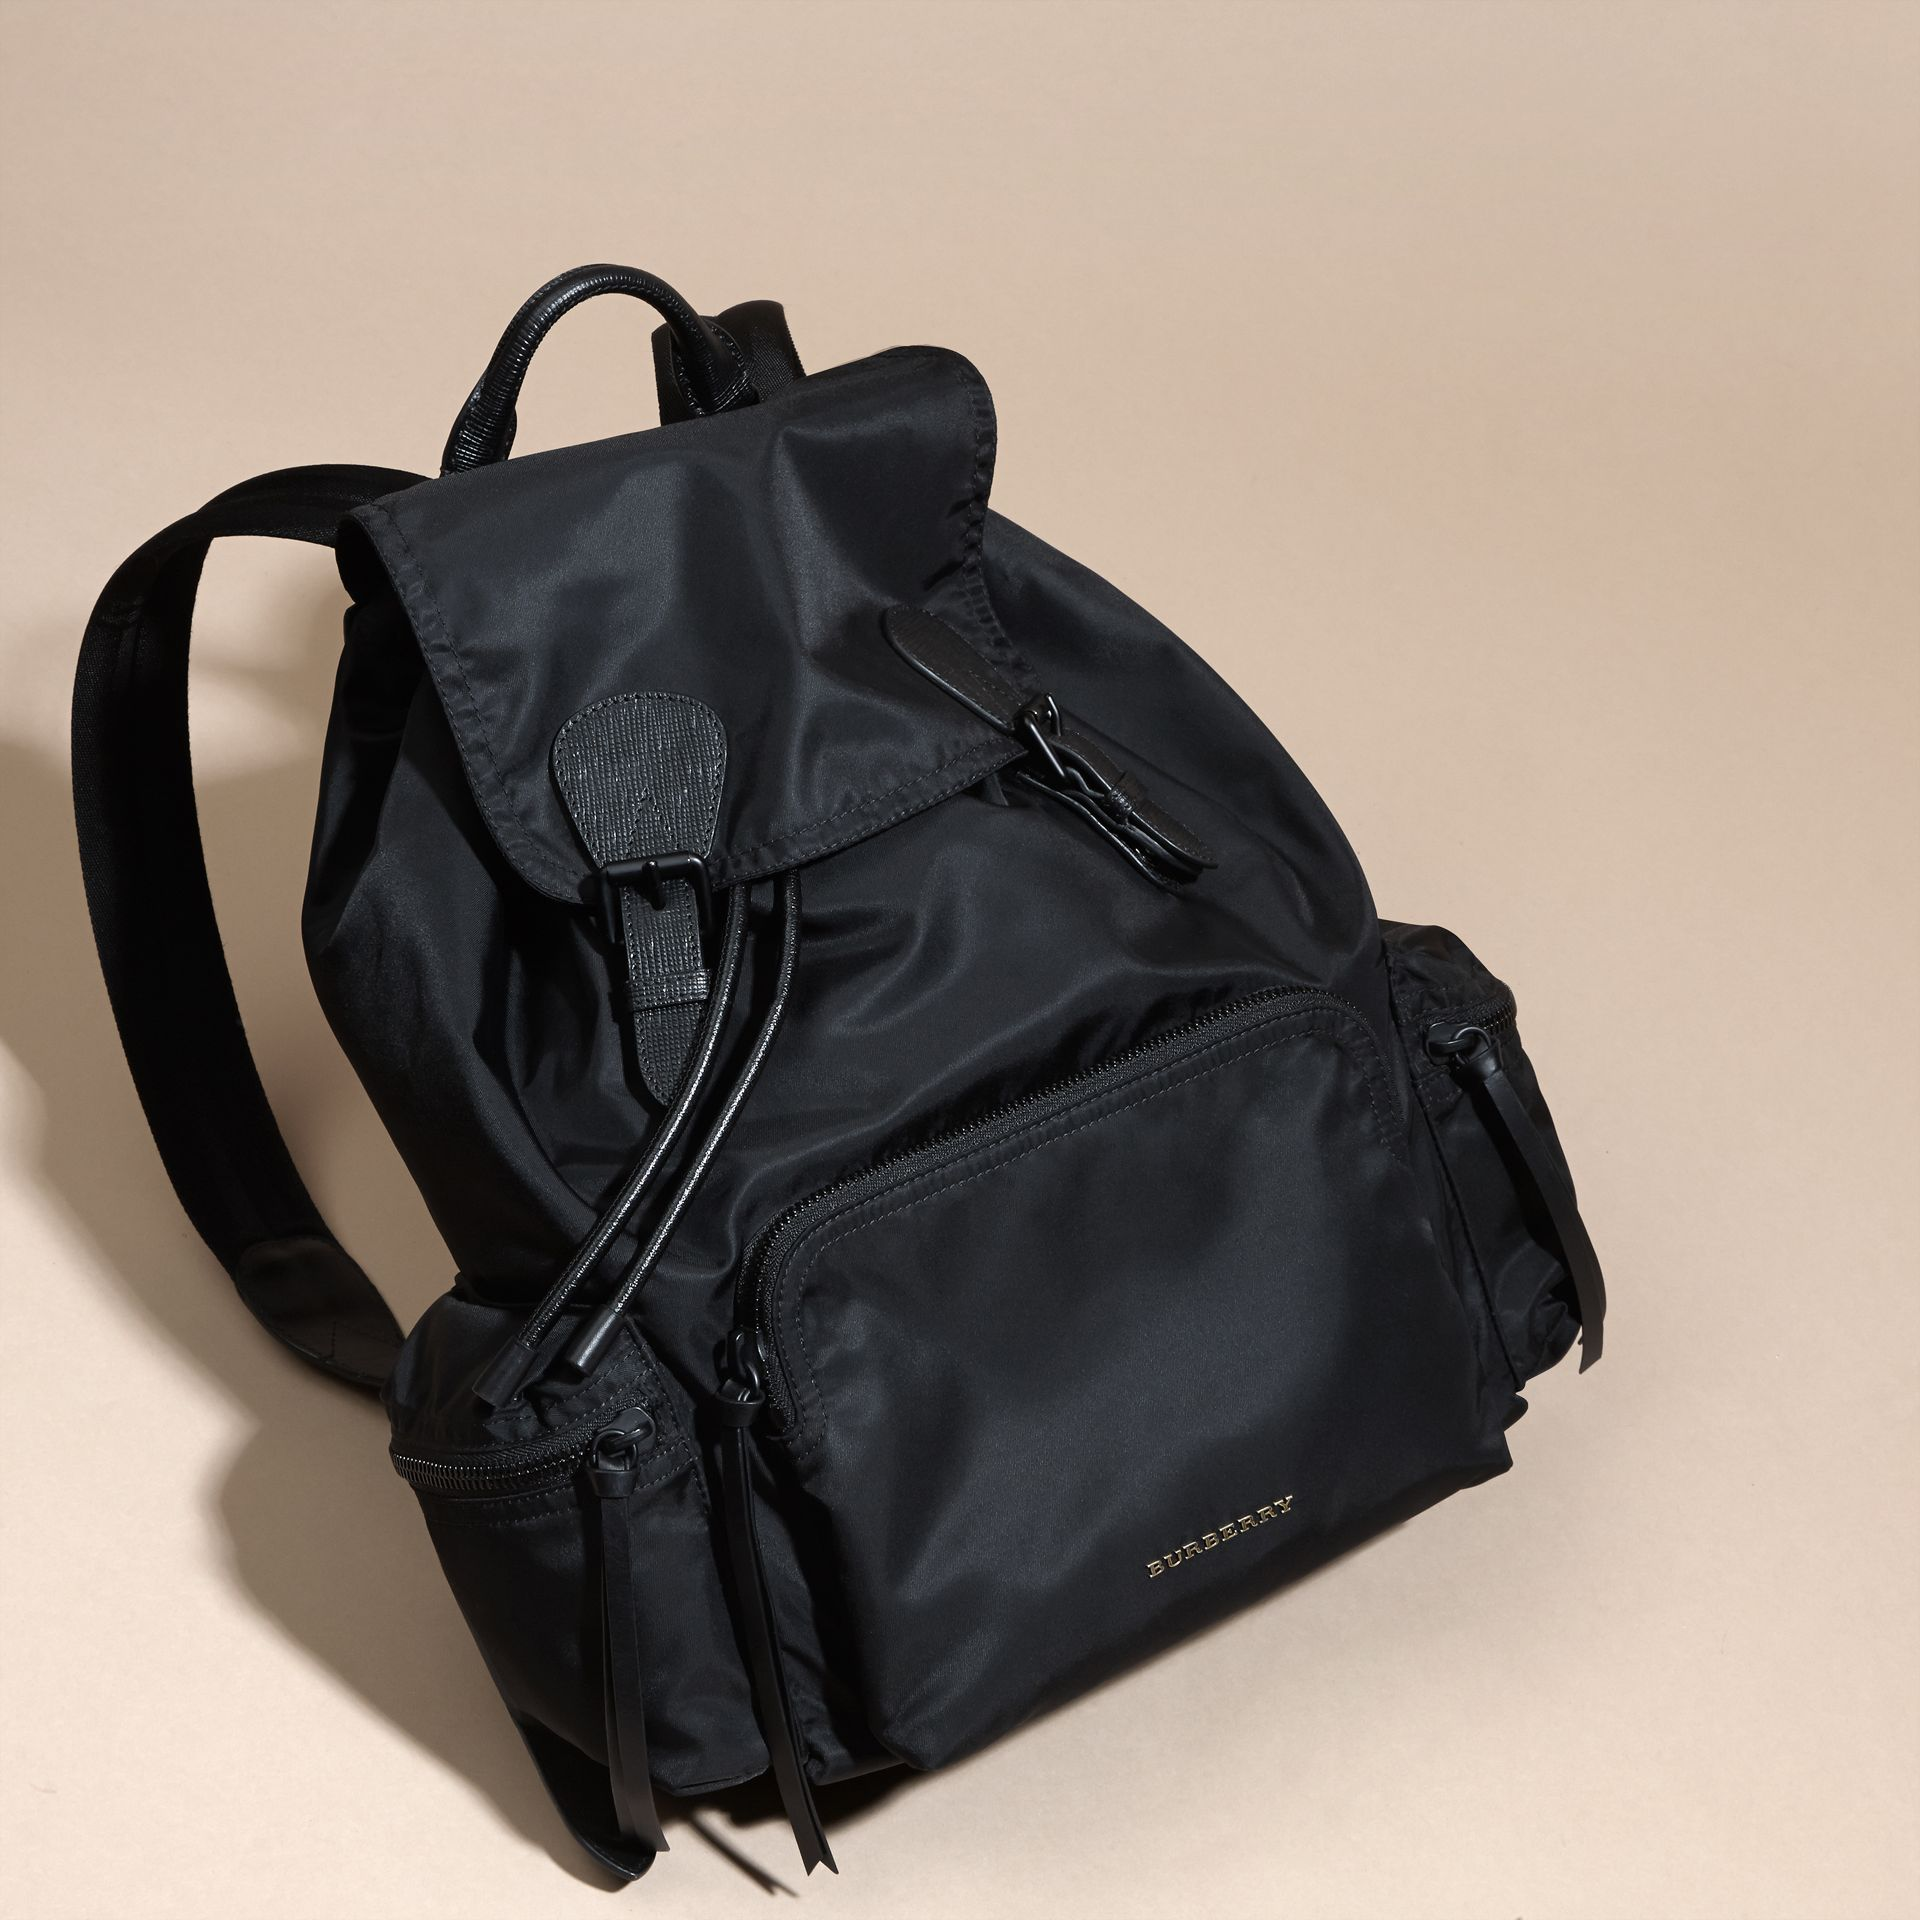 Grand sac The Rucksack en nylon technique et cuir Noir - photo de la galerie 8